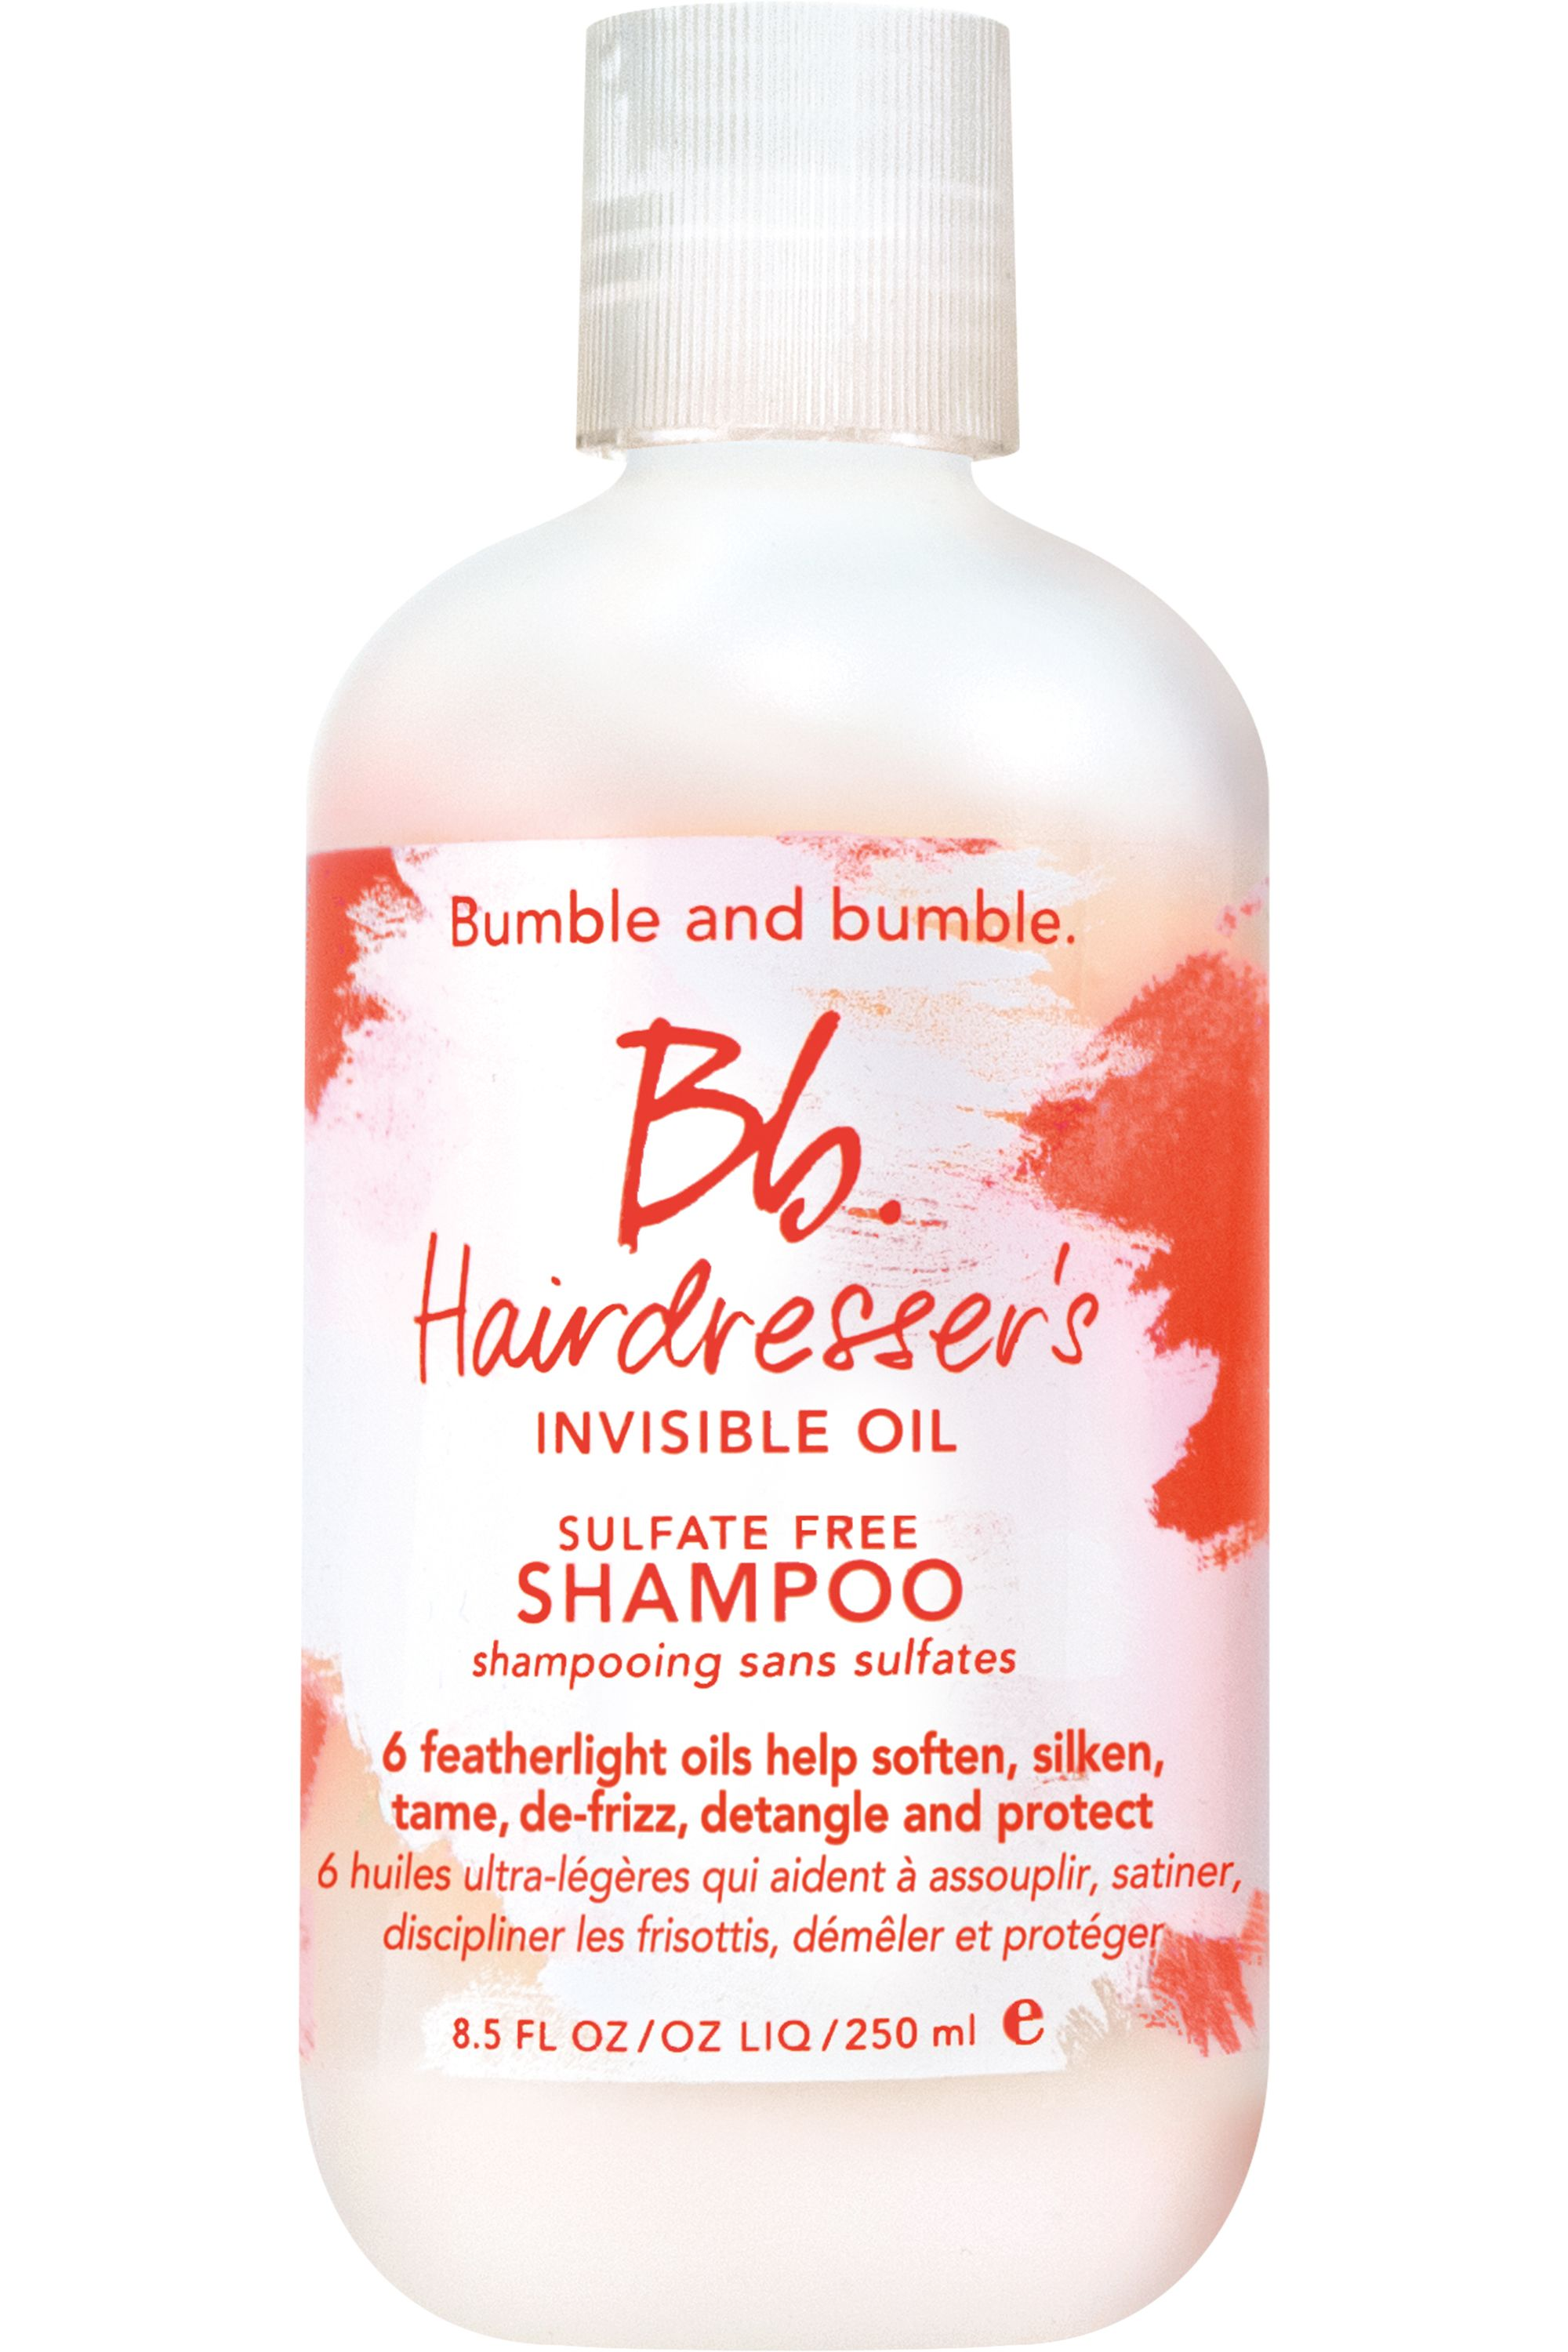 Blissim : Bumble and bumble. - Shampoing cheveux secs et cassants Hairdresser's Invisible Oil - Shampoing cheveux secs et cassants Hairdresser's Invisible Oil